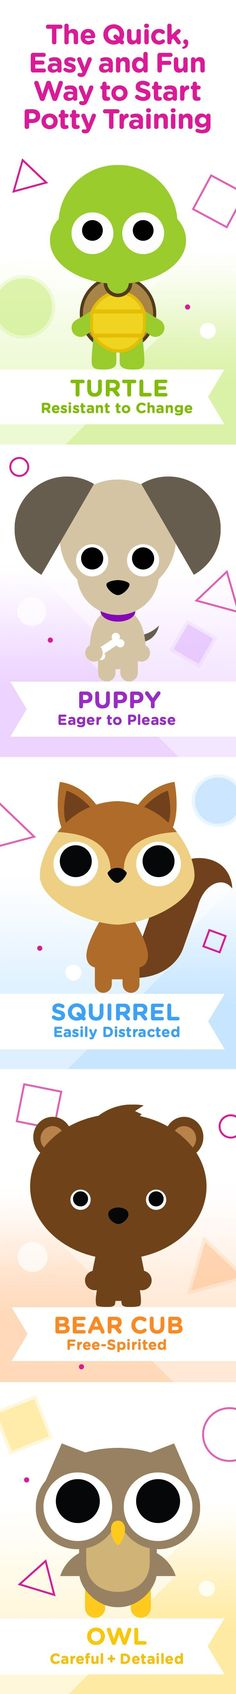 Find out which of our potty personalities sounds most like your child to get a more personalized potty training experience! From helping teach your Squirrel how to focus, giving clear directions to your Owl, or keeping things fun for your Bear Cub, we have tips and tricks tailored specifically to your child's behavior.